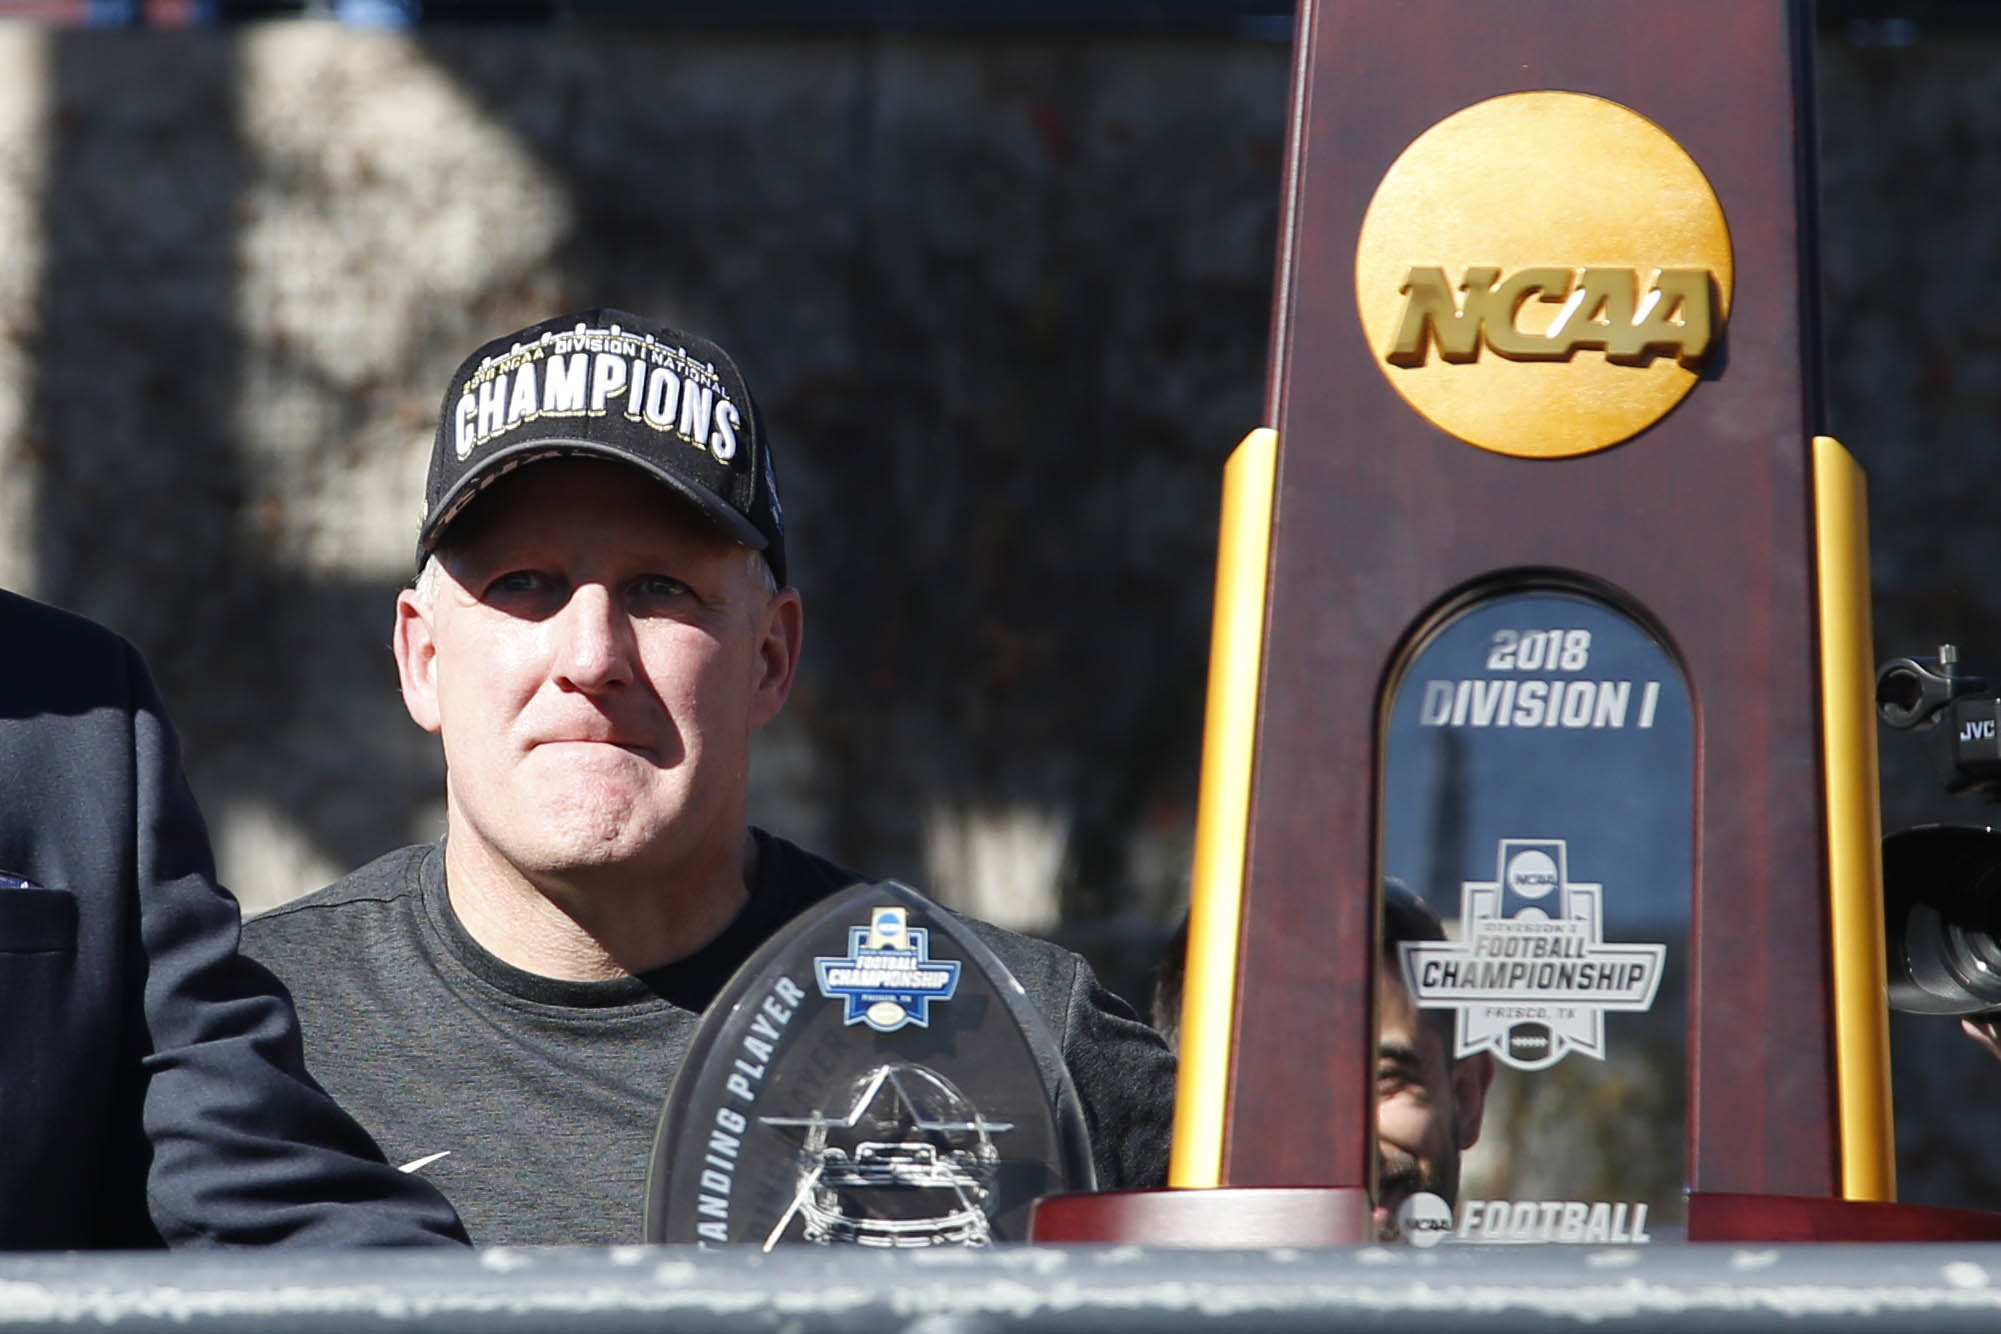 For an alleged fallback guy, Chris Klieman's staff decisions sure look independent.